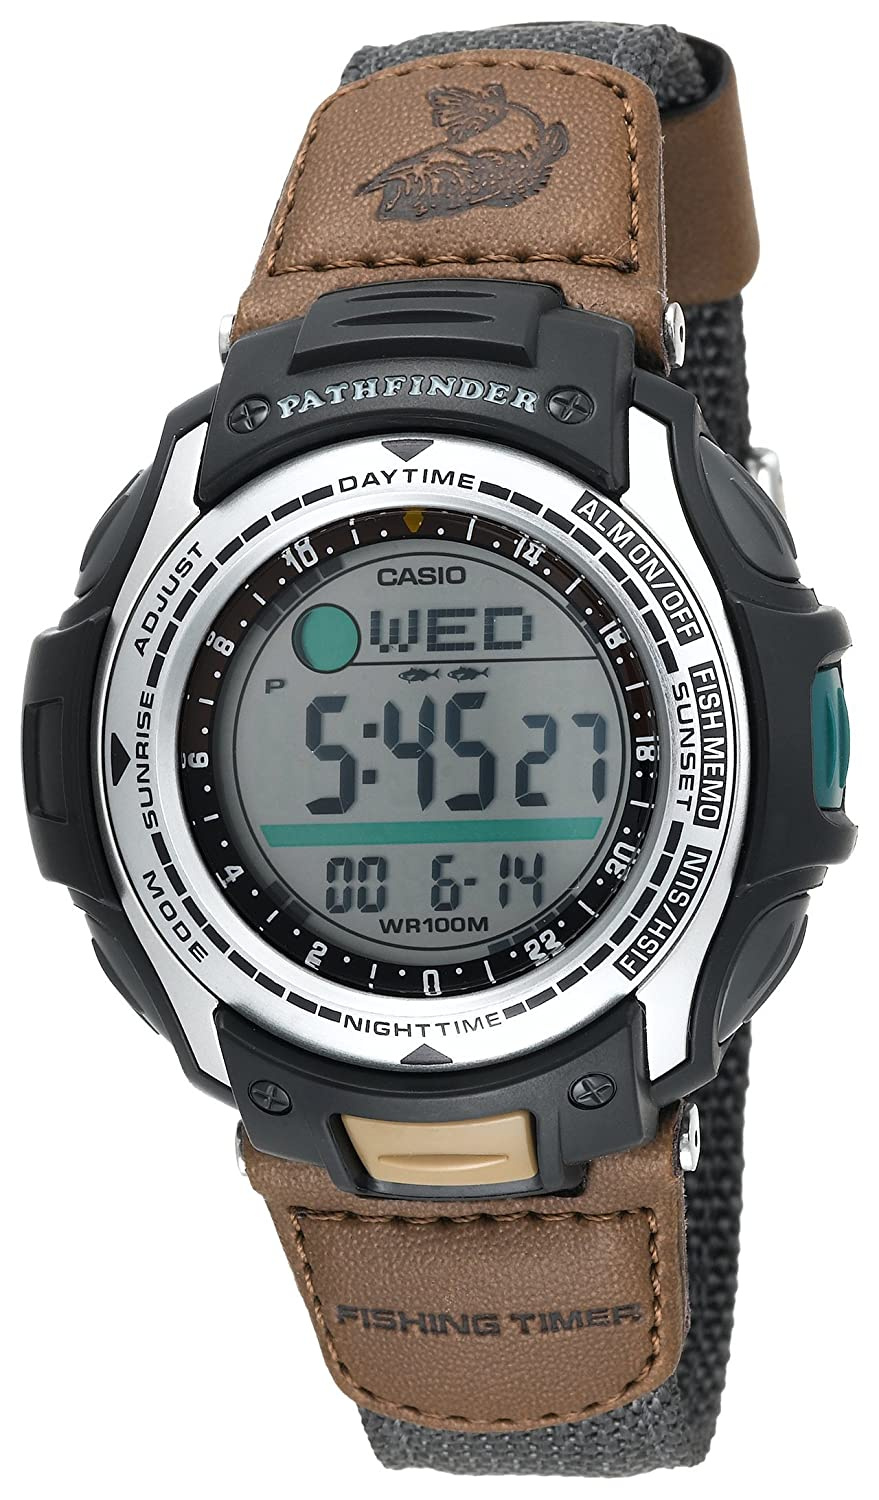 Casio Men&#8217;s PAS400B-5V Pathfinder Forester Fishing Moon Phase Watch $30.00